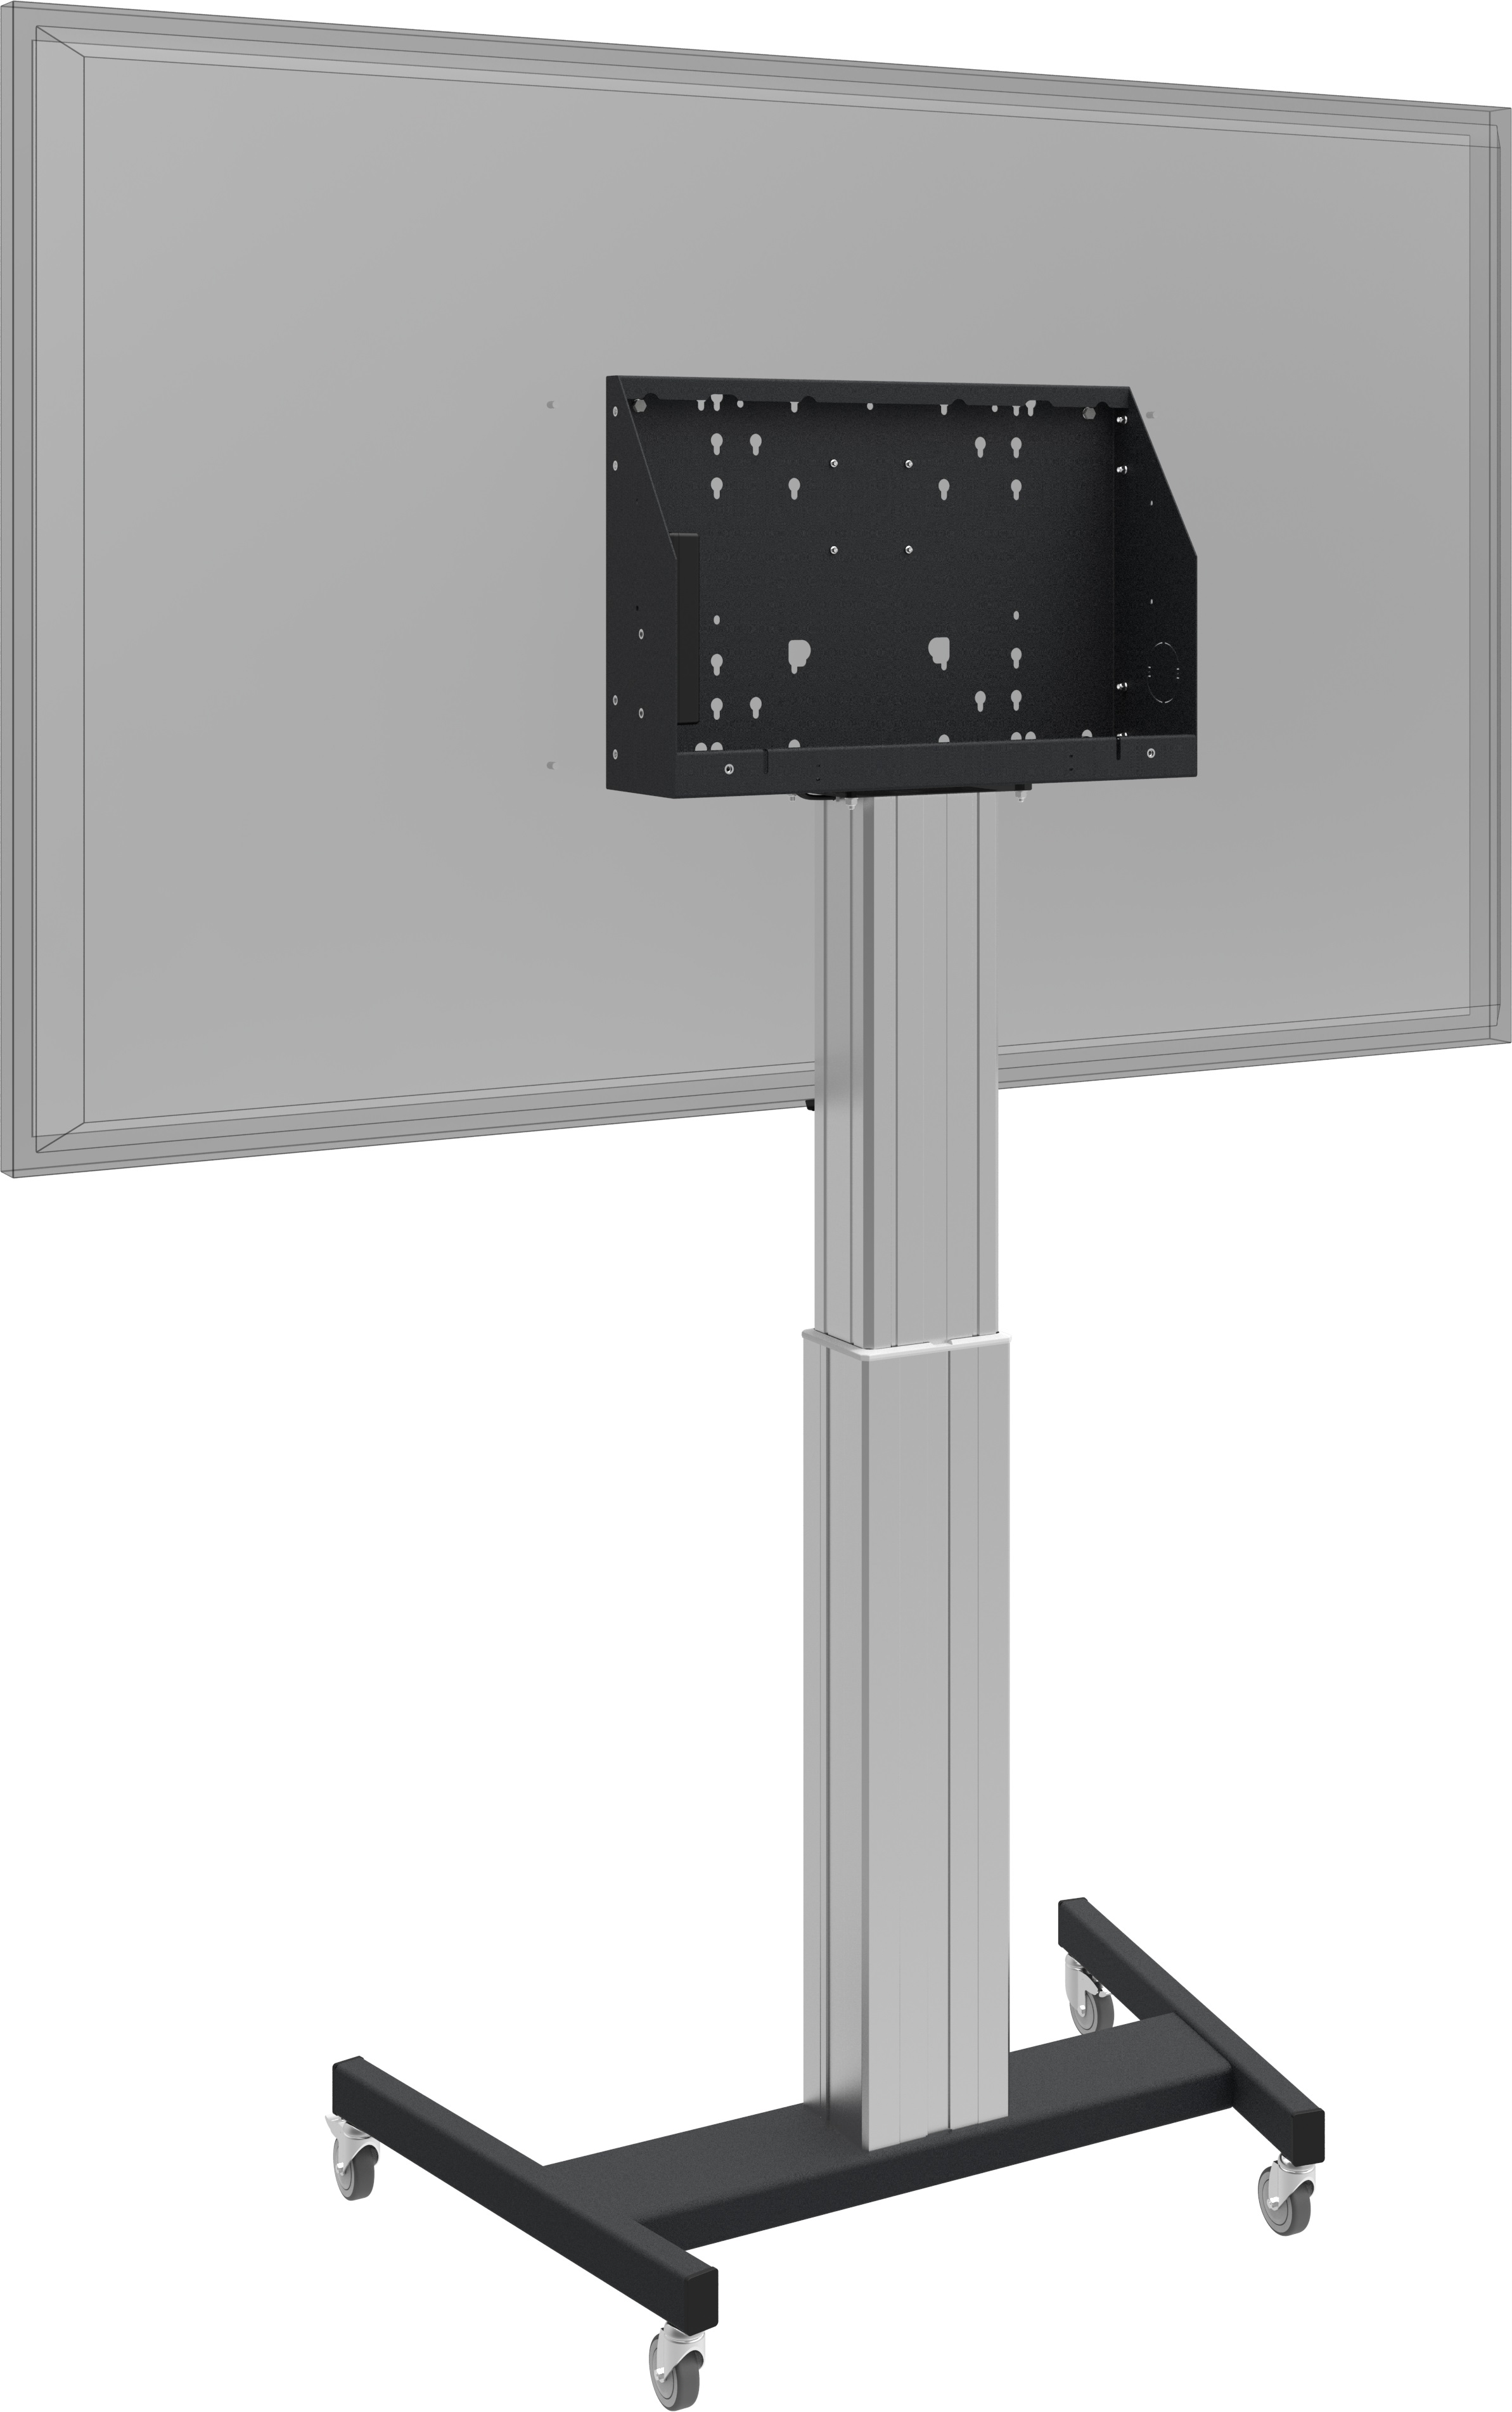 "iiyama - Floor lift XL on wheels for (touch) screens bigger than 65"", max 120 kg"